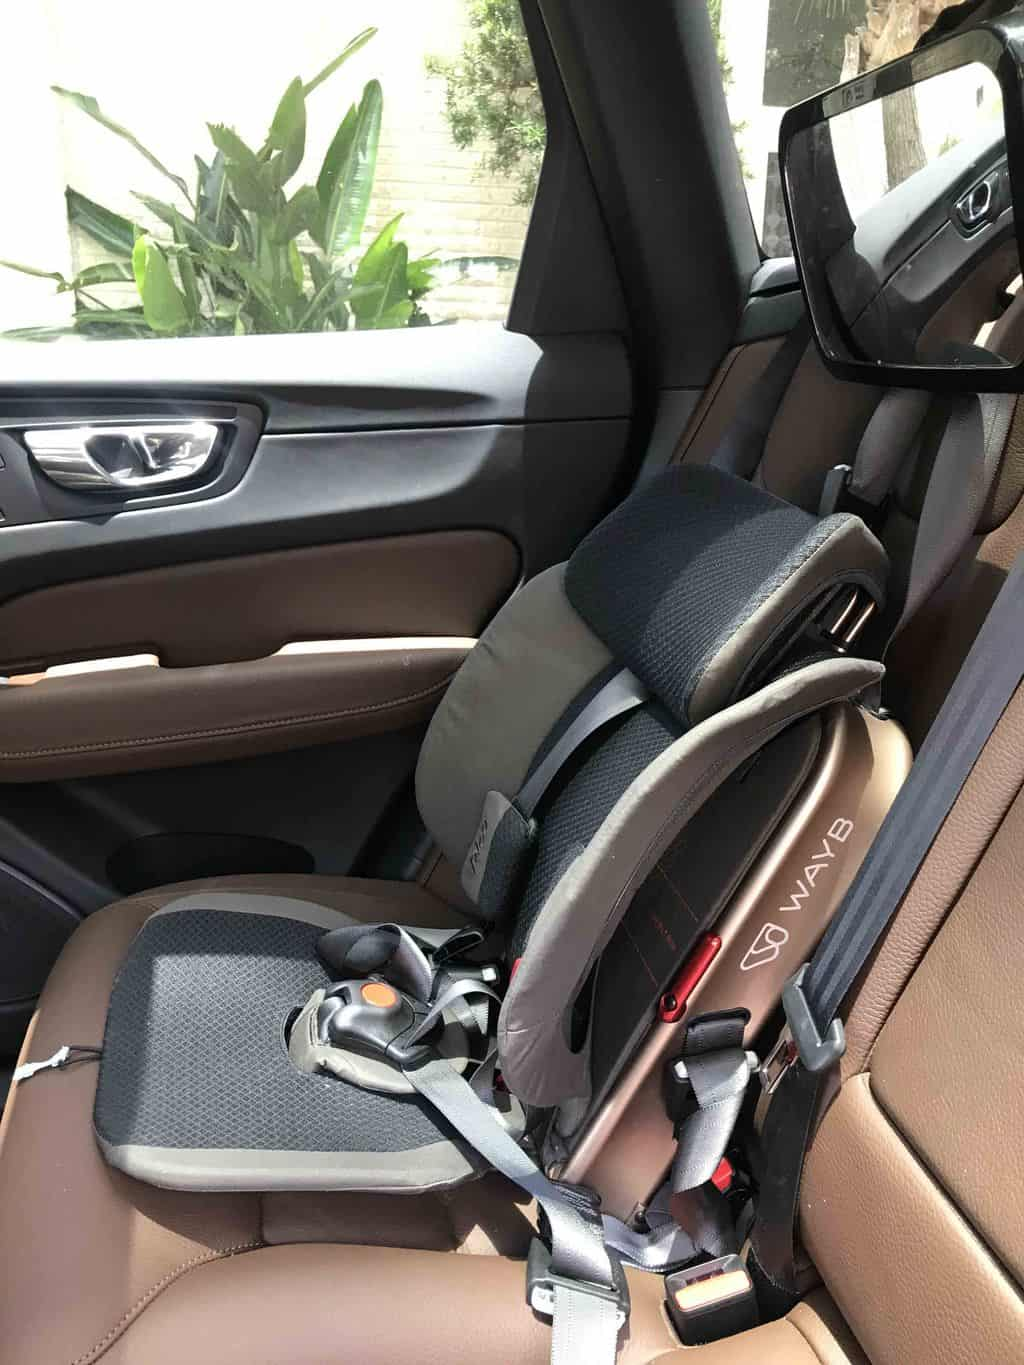 A portable convertible car seat thats folding called Wayb!